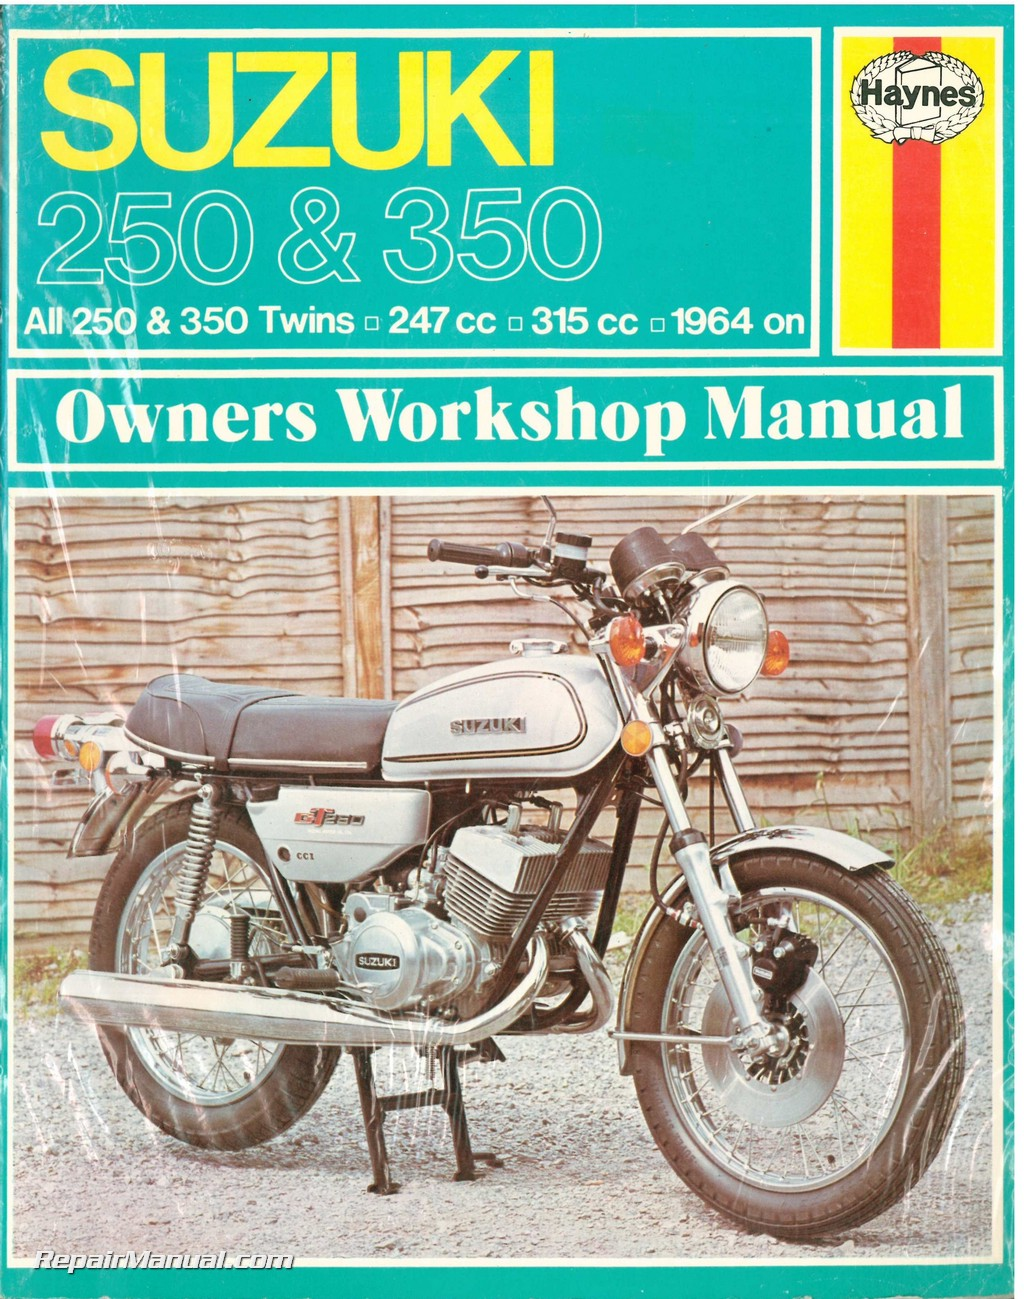 Suzuki Intruder 1500 Service Manual